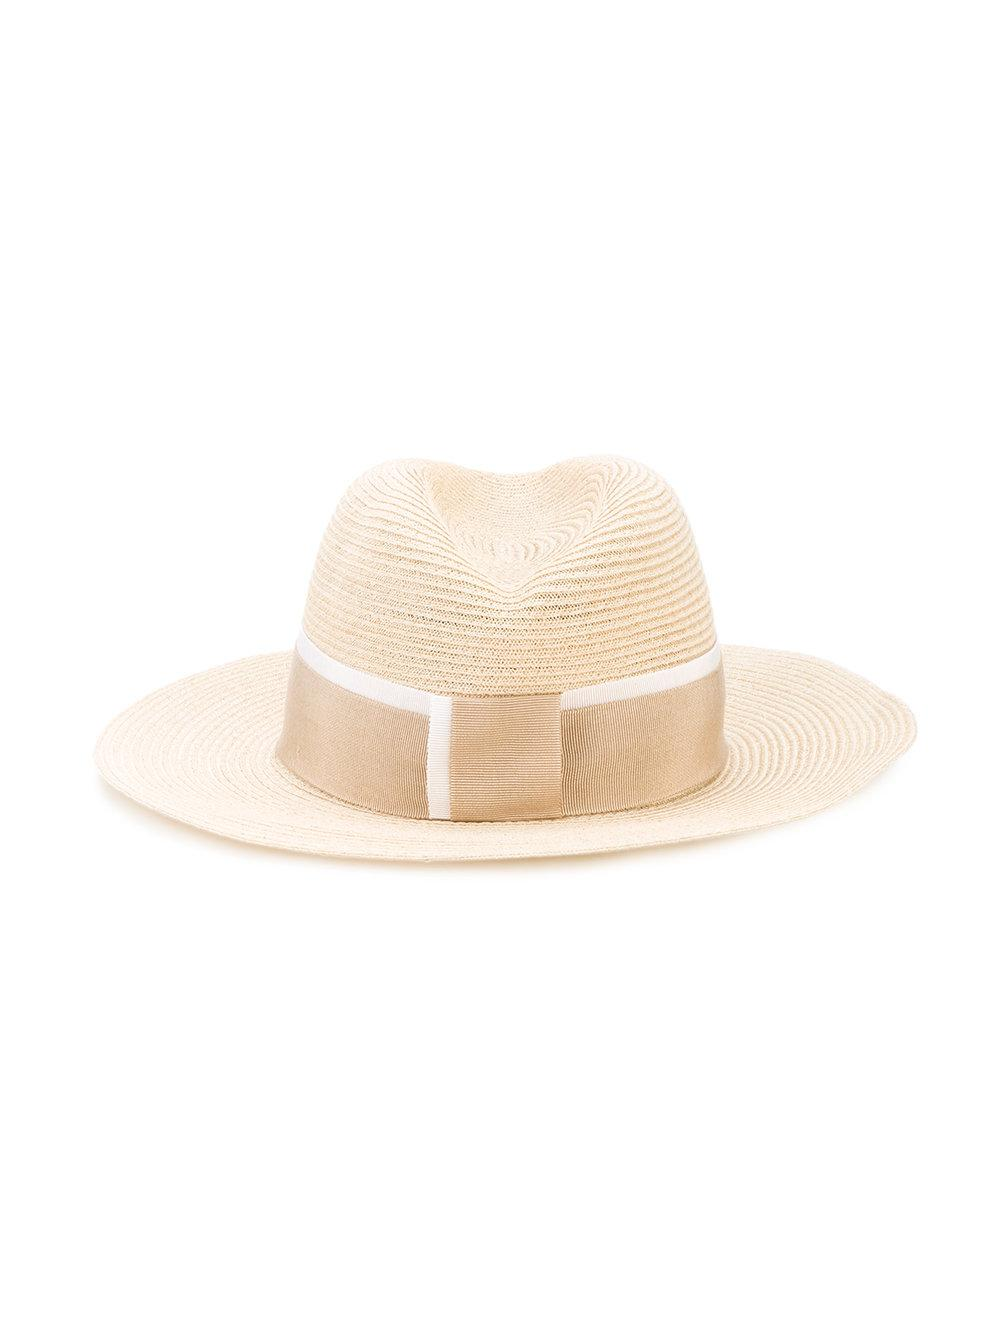 Lyst maison michel hat with grosgrain ribbon in natural for Maison michel